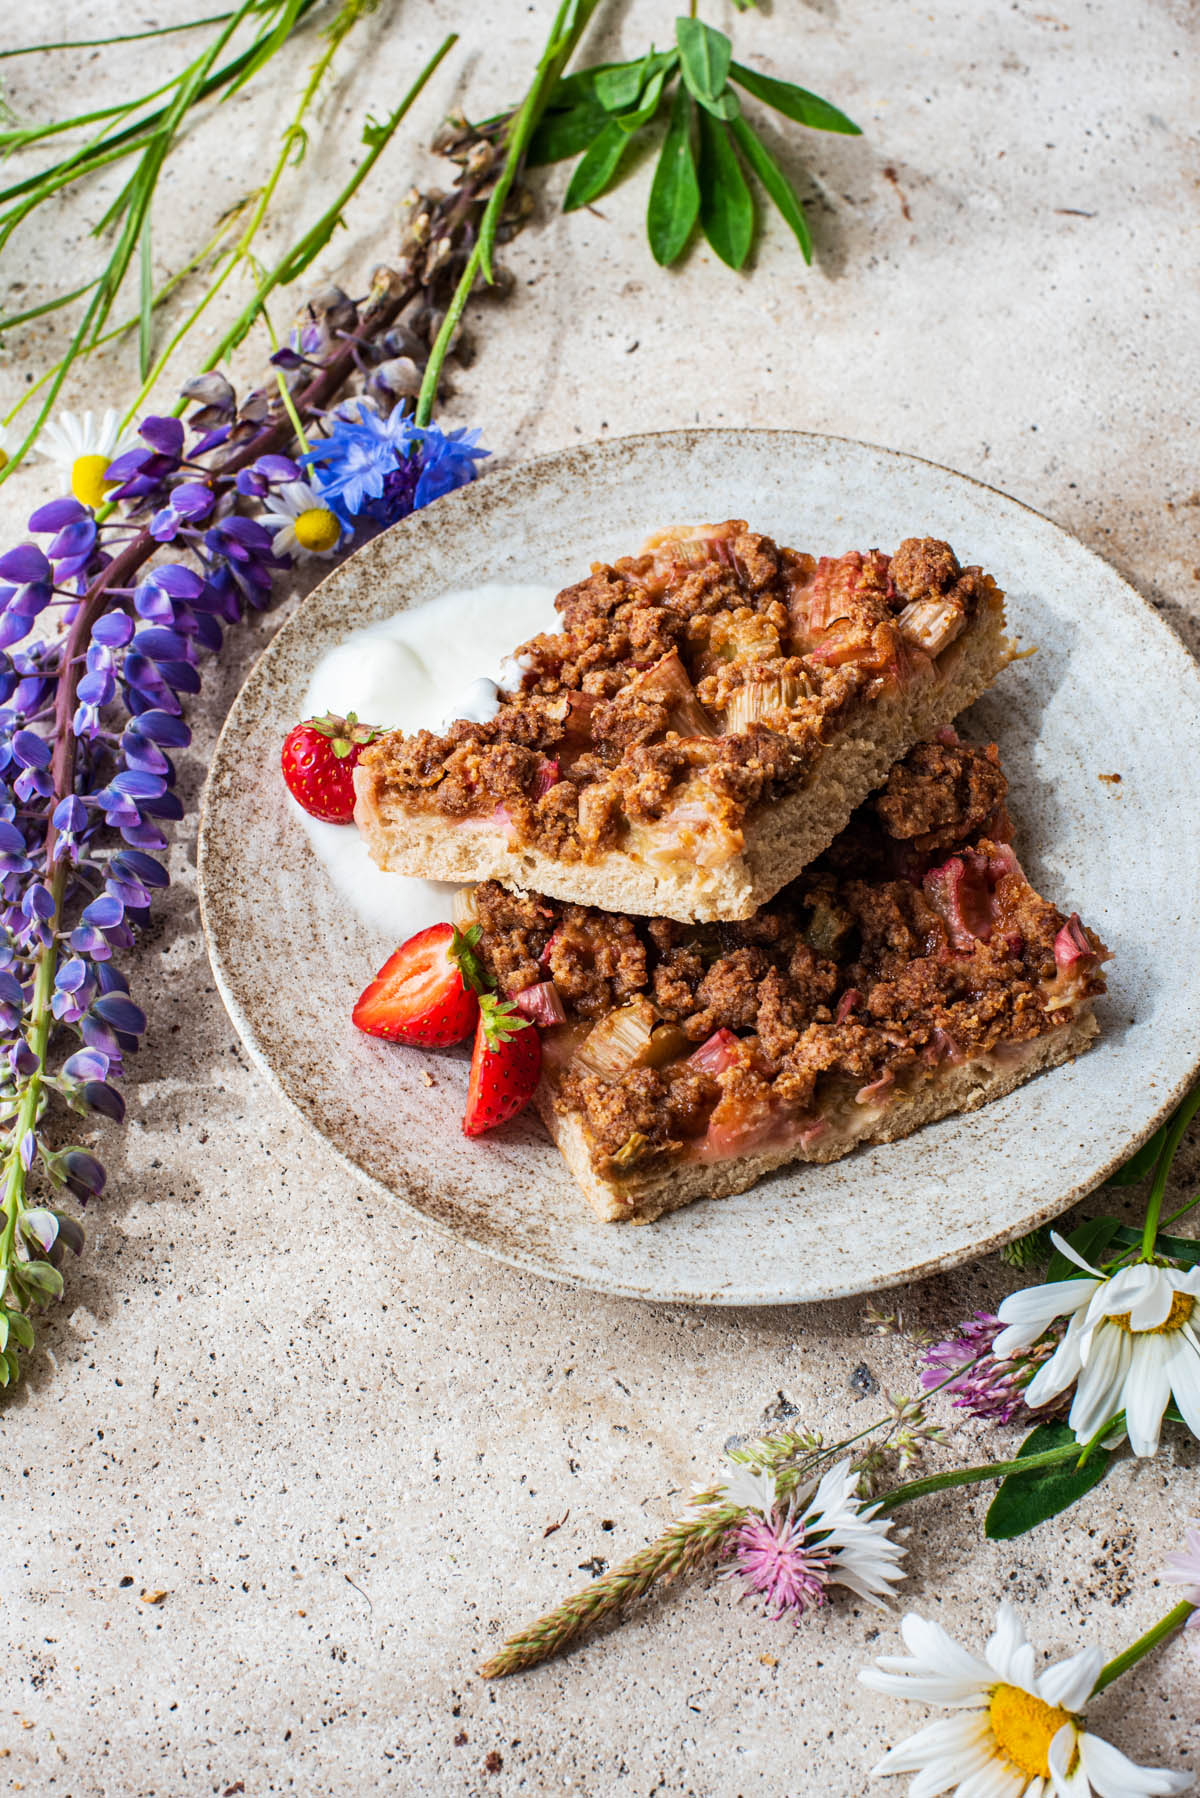 Two pieces of cake on a plate with wildflowers around.